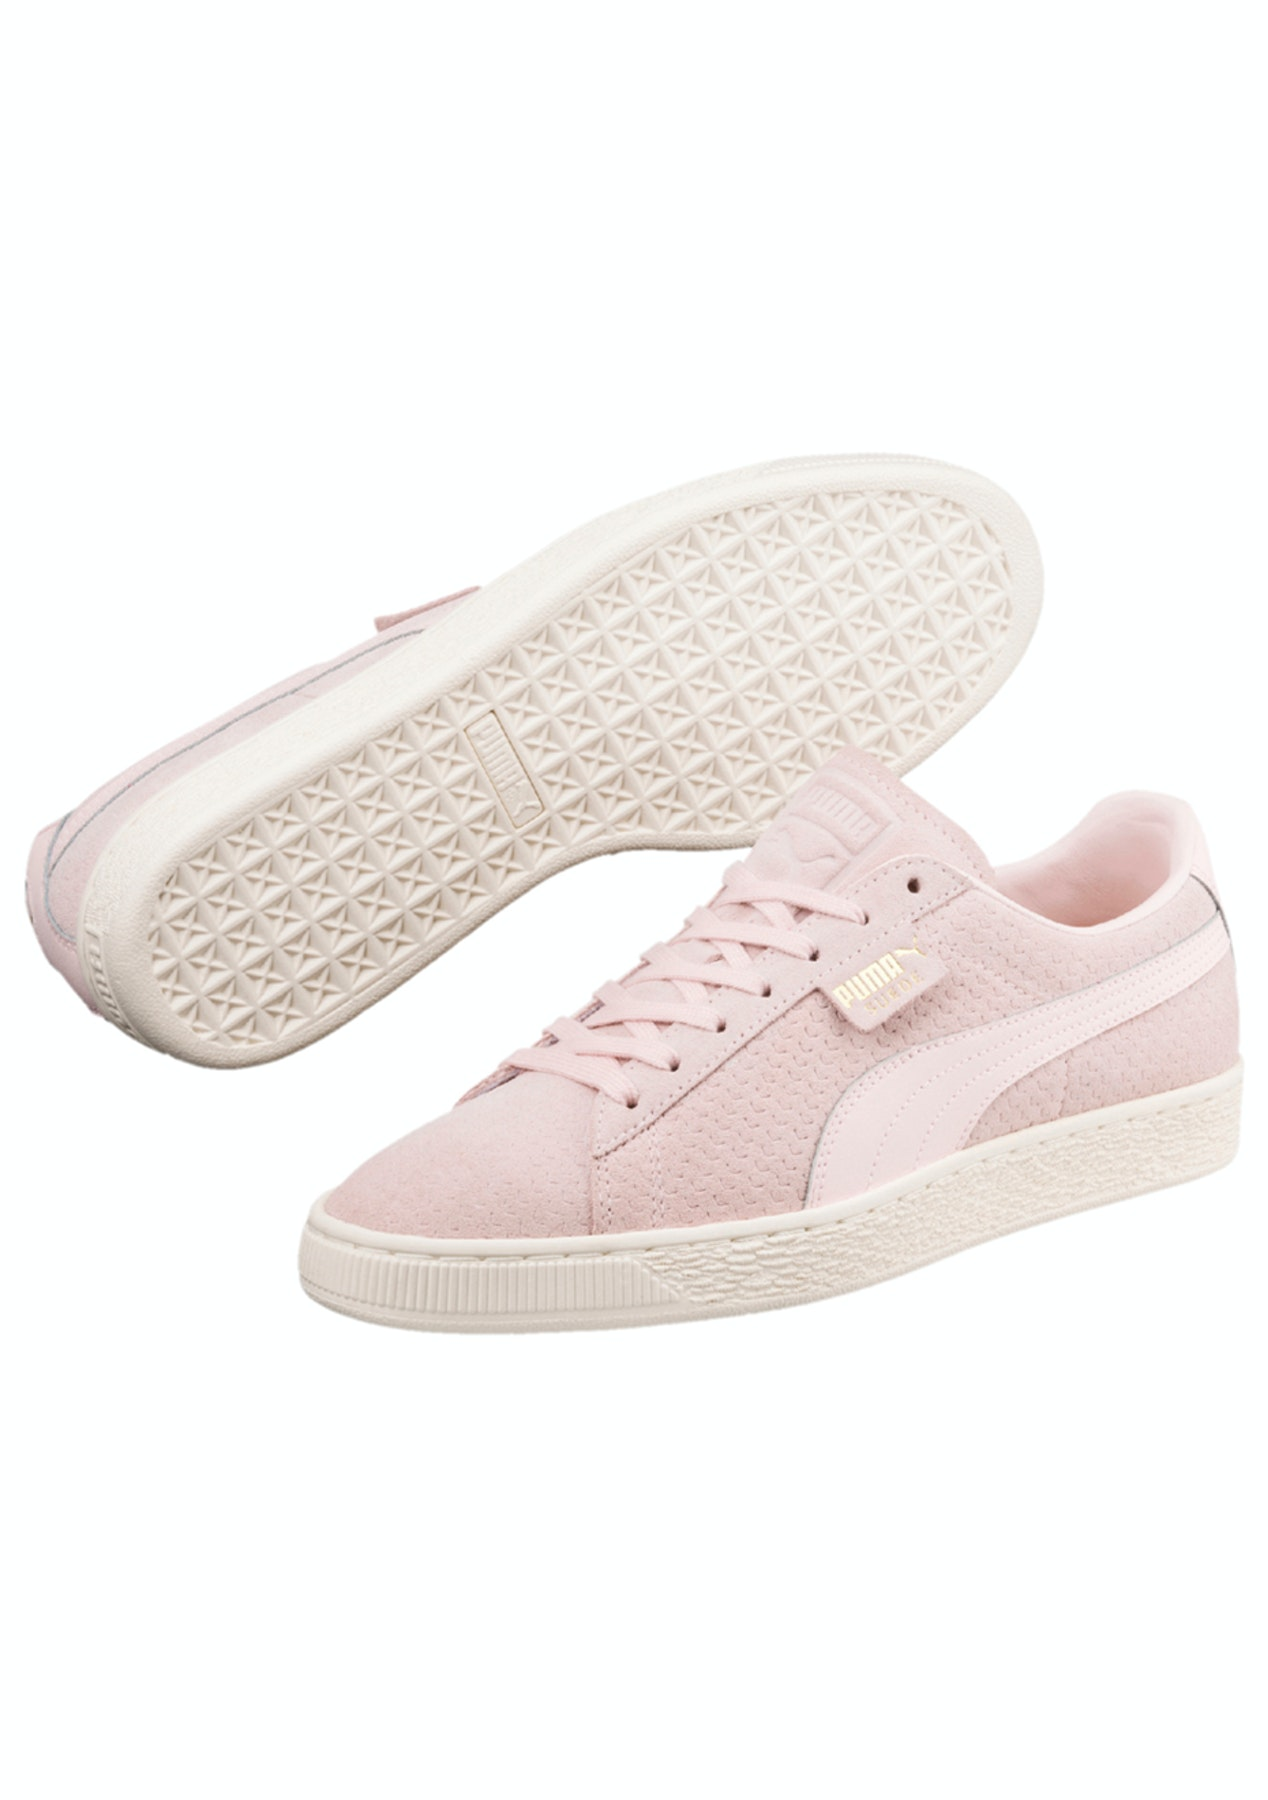 separation shoes abd2a 3e45f Puma Womens - Suede Classic Perforation Pearl